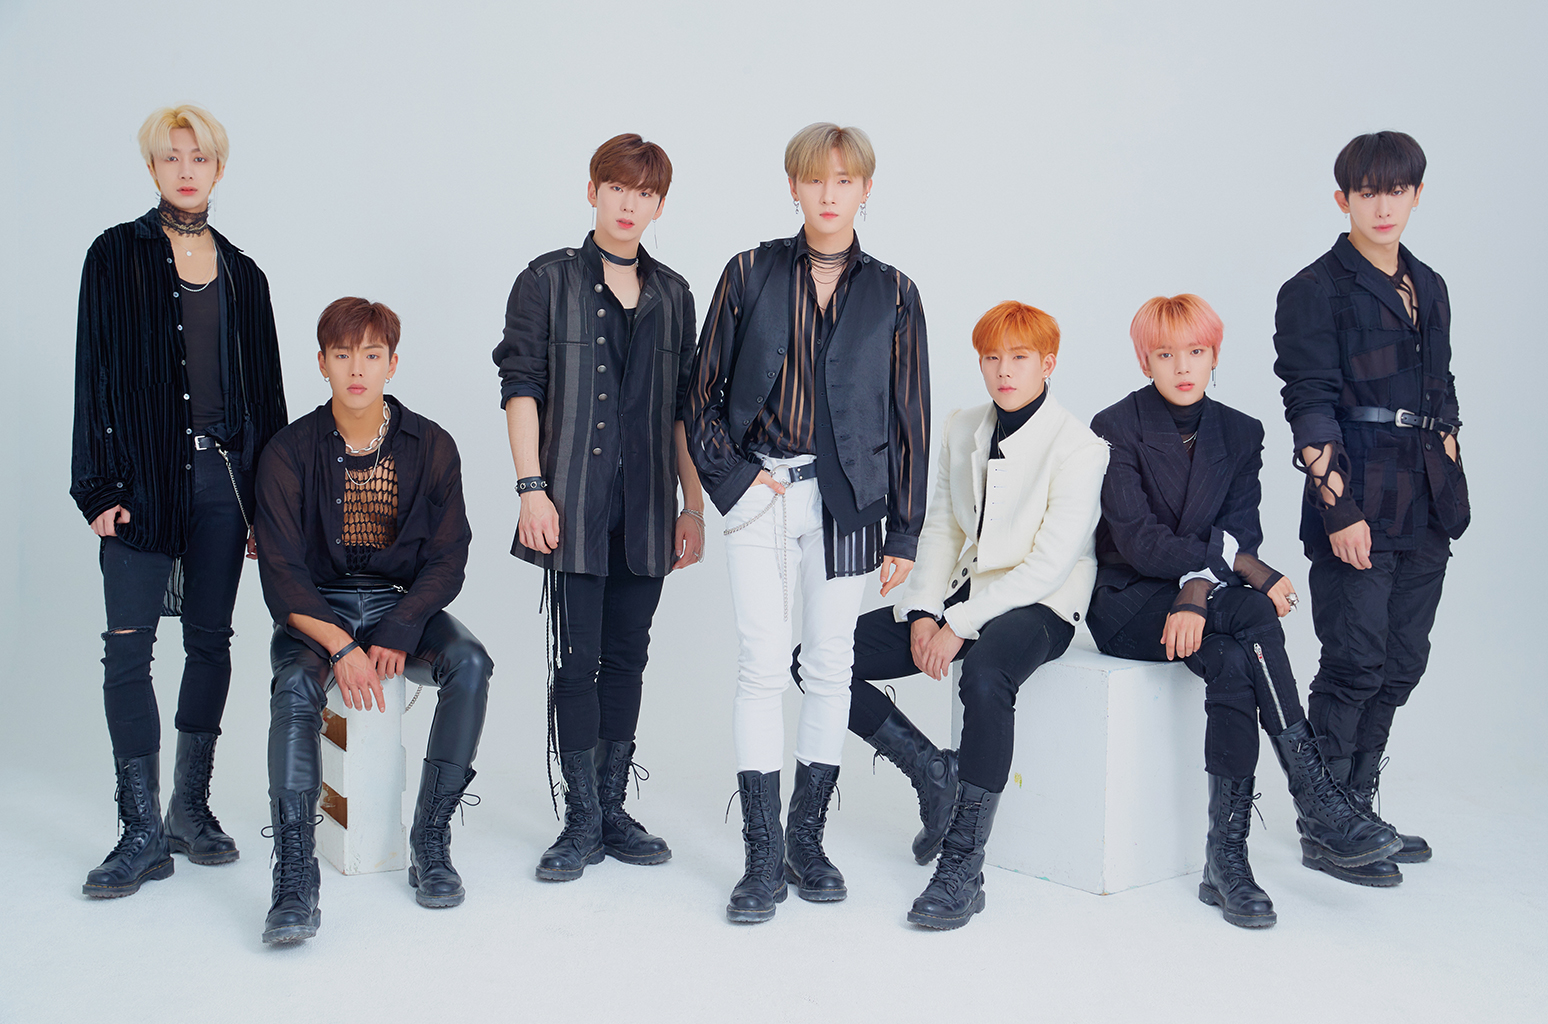 MONSTAX press